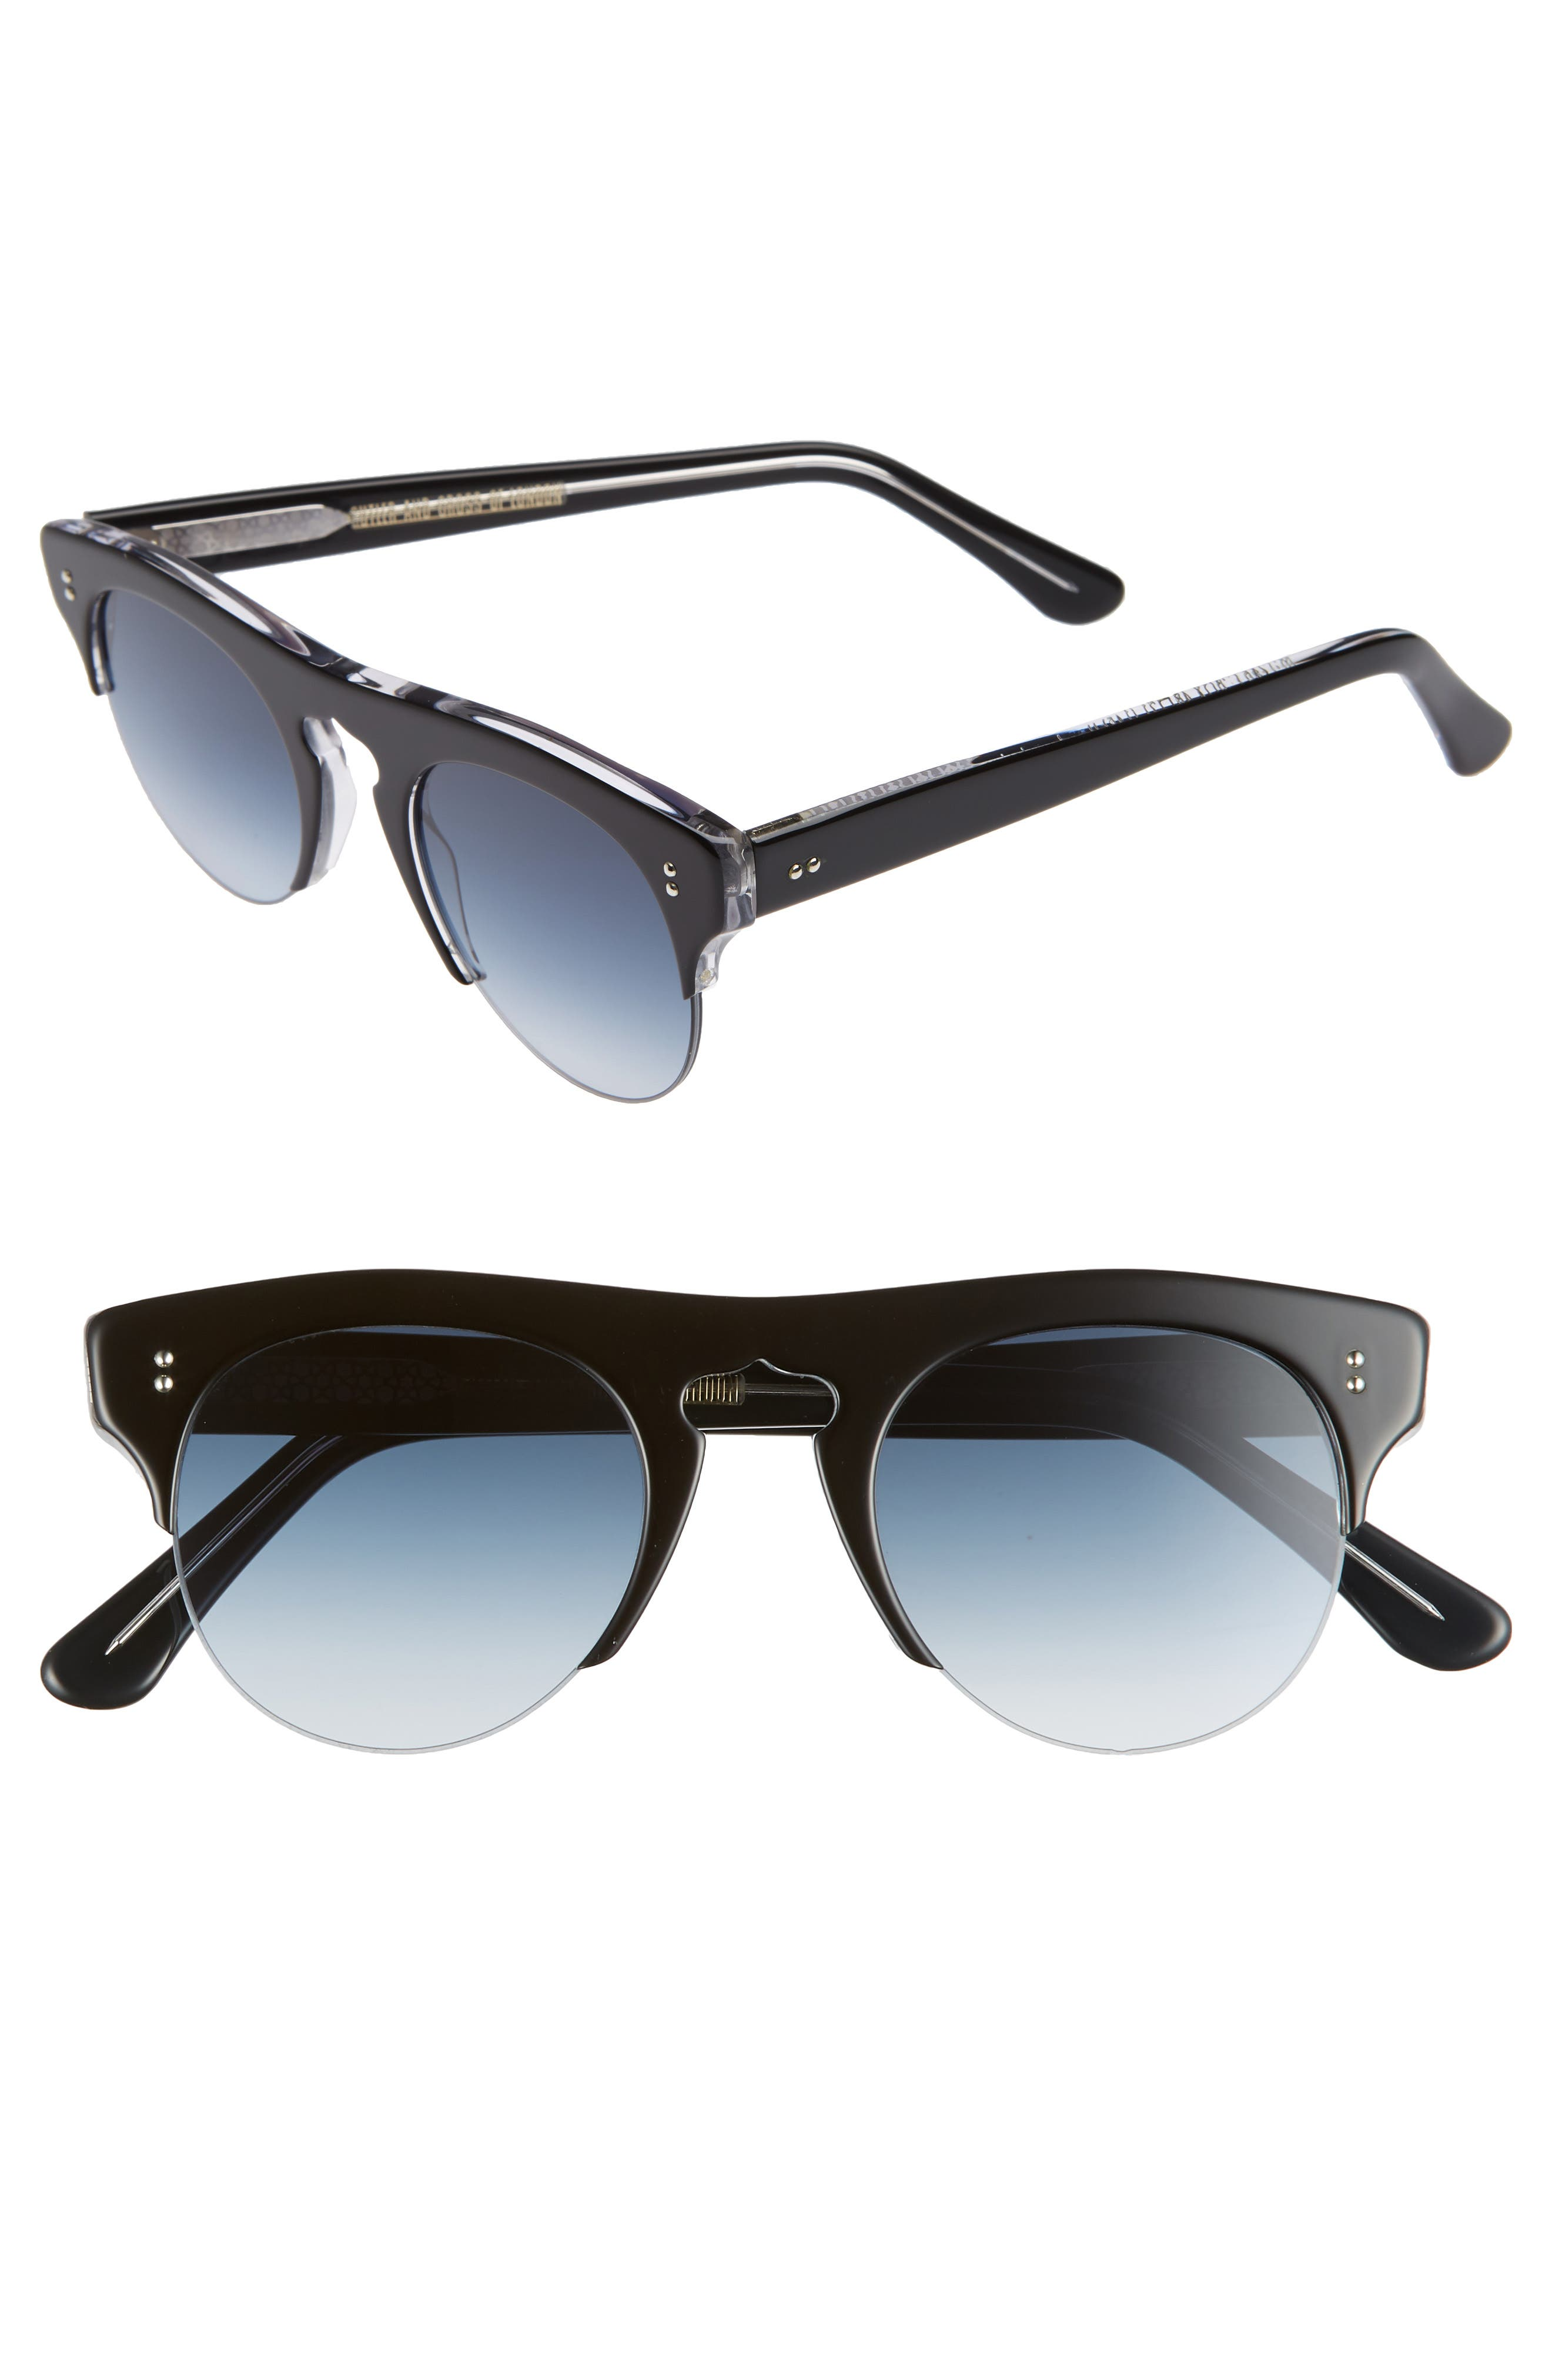 CUTLER AND GROSS 48MM POLARIZED BROWLINE SUNGLASSES - BLACK ON CRYSTAL/ BLUE